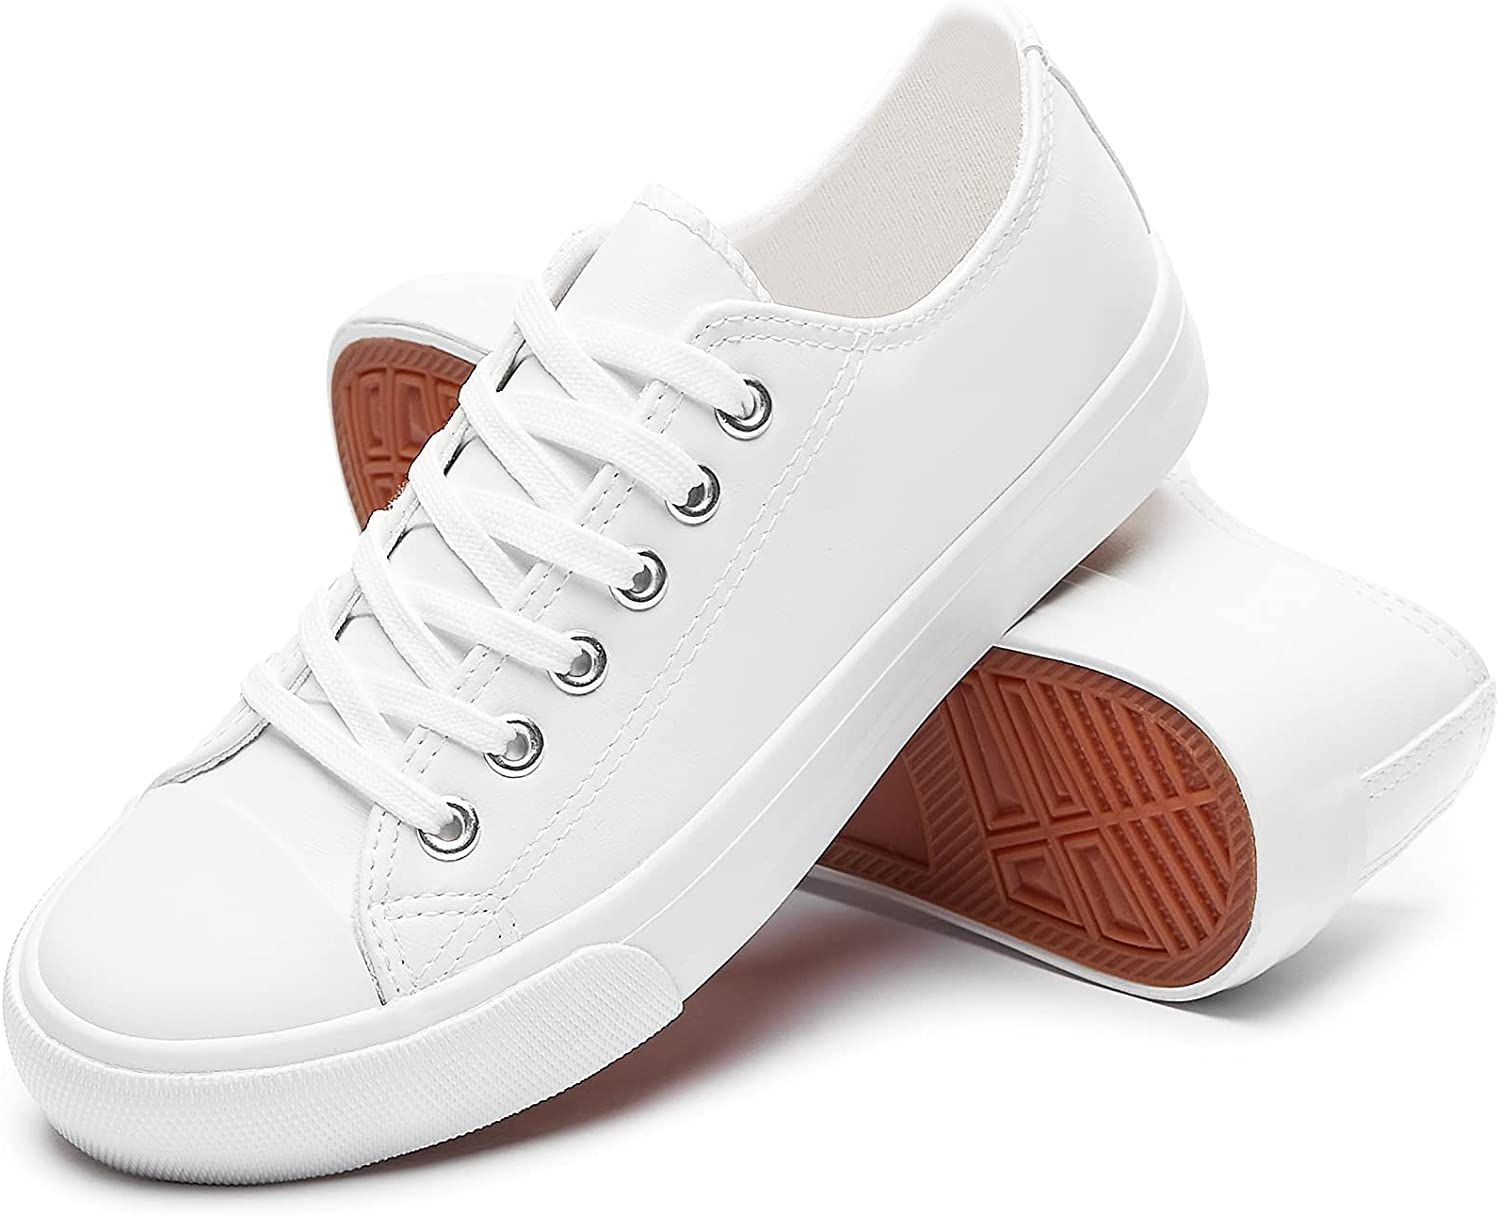 Women's Canvas Shoes Popular overseas Fashion Sneakers Top Lace Directly managed store Low Tennis